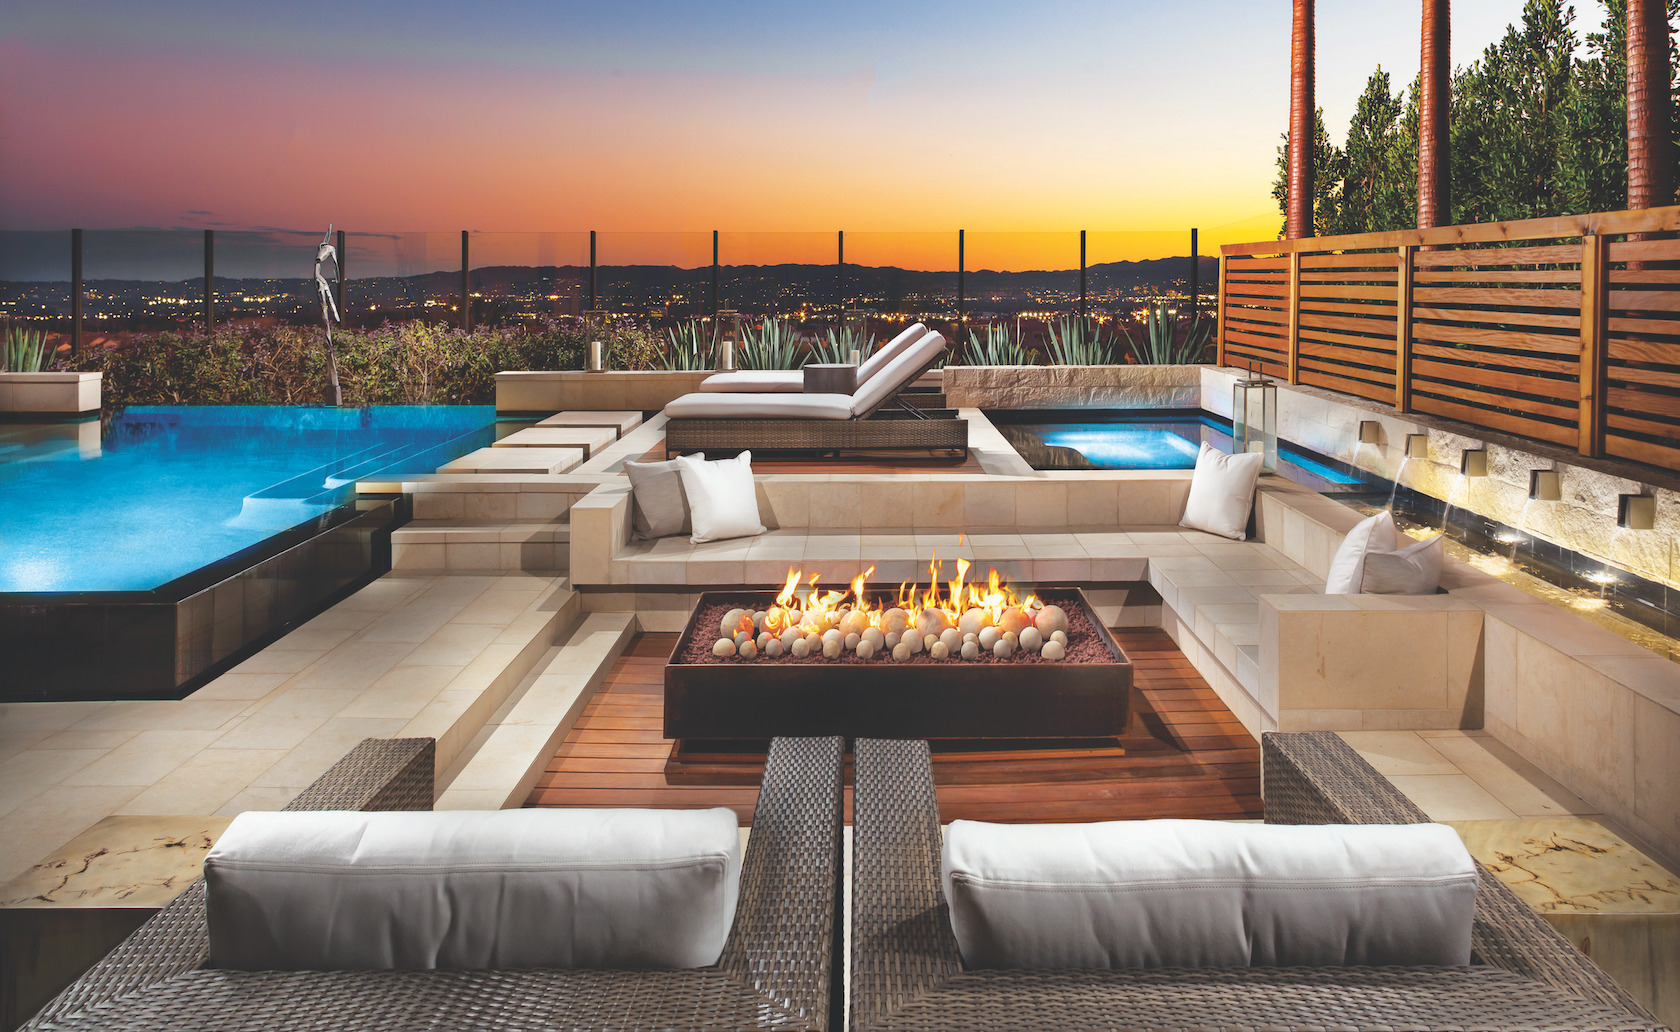 Fire Pit in a Backyard of Luxury Home